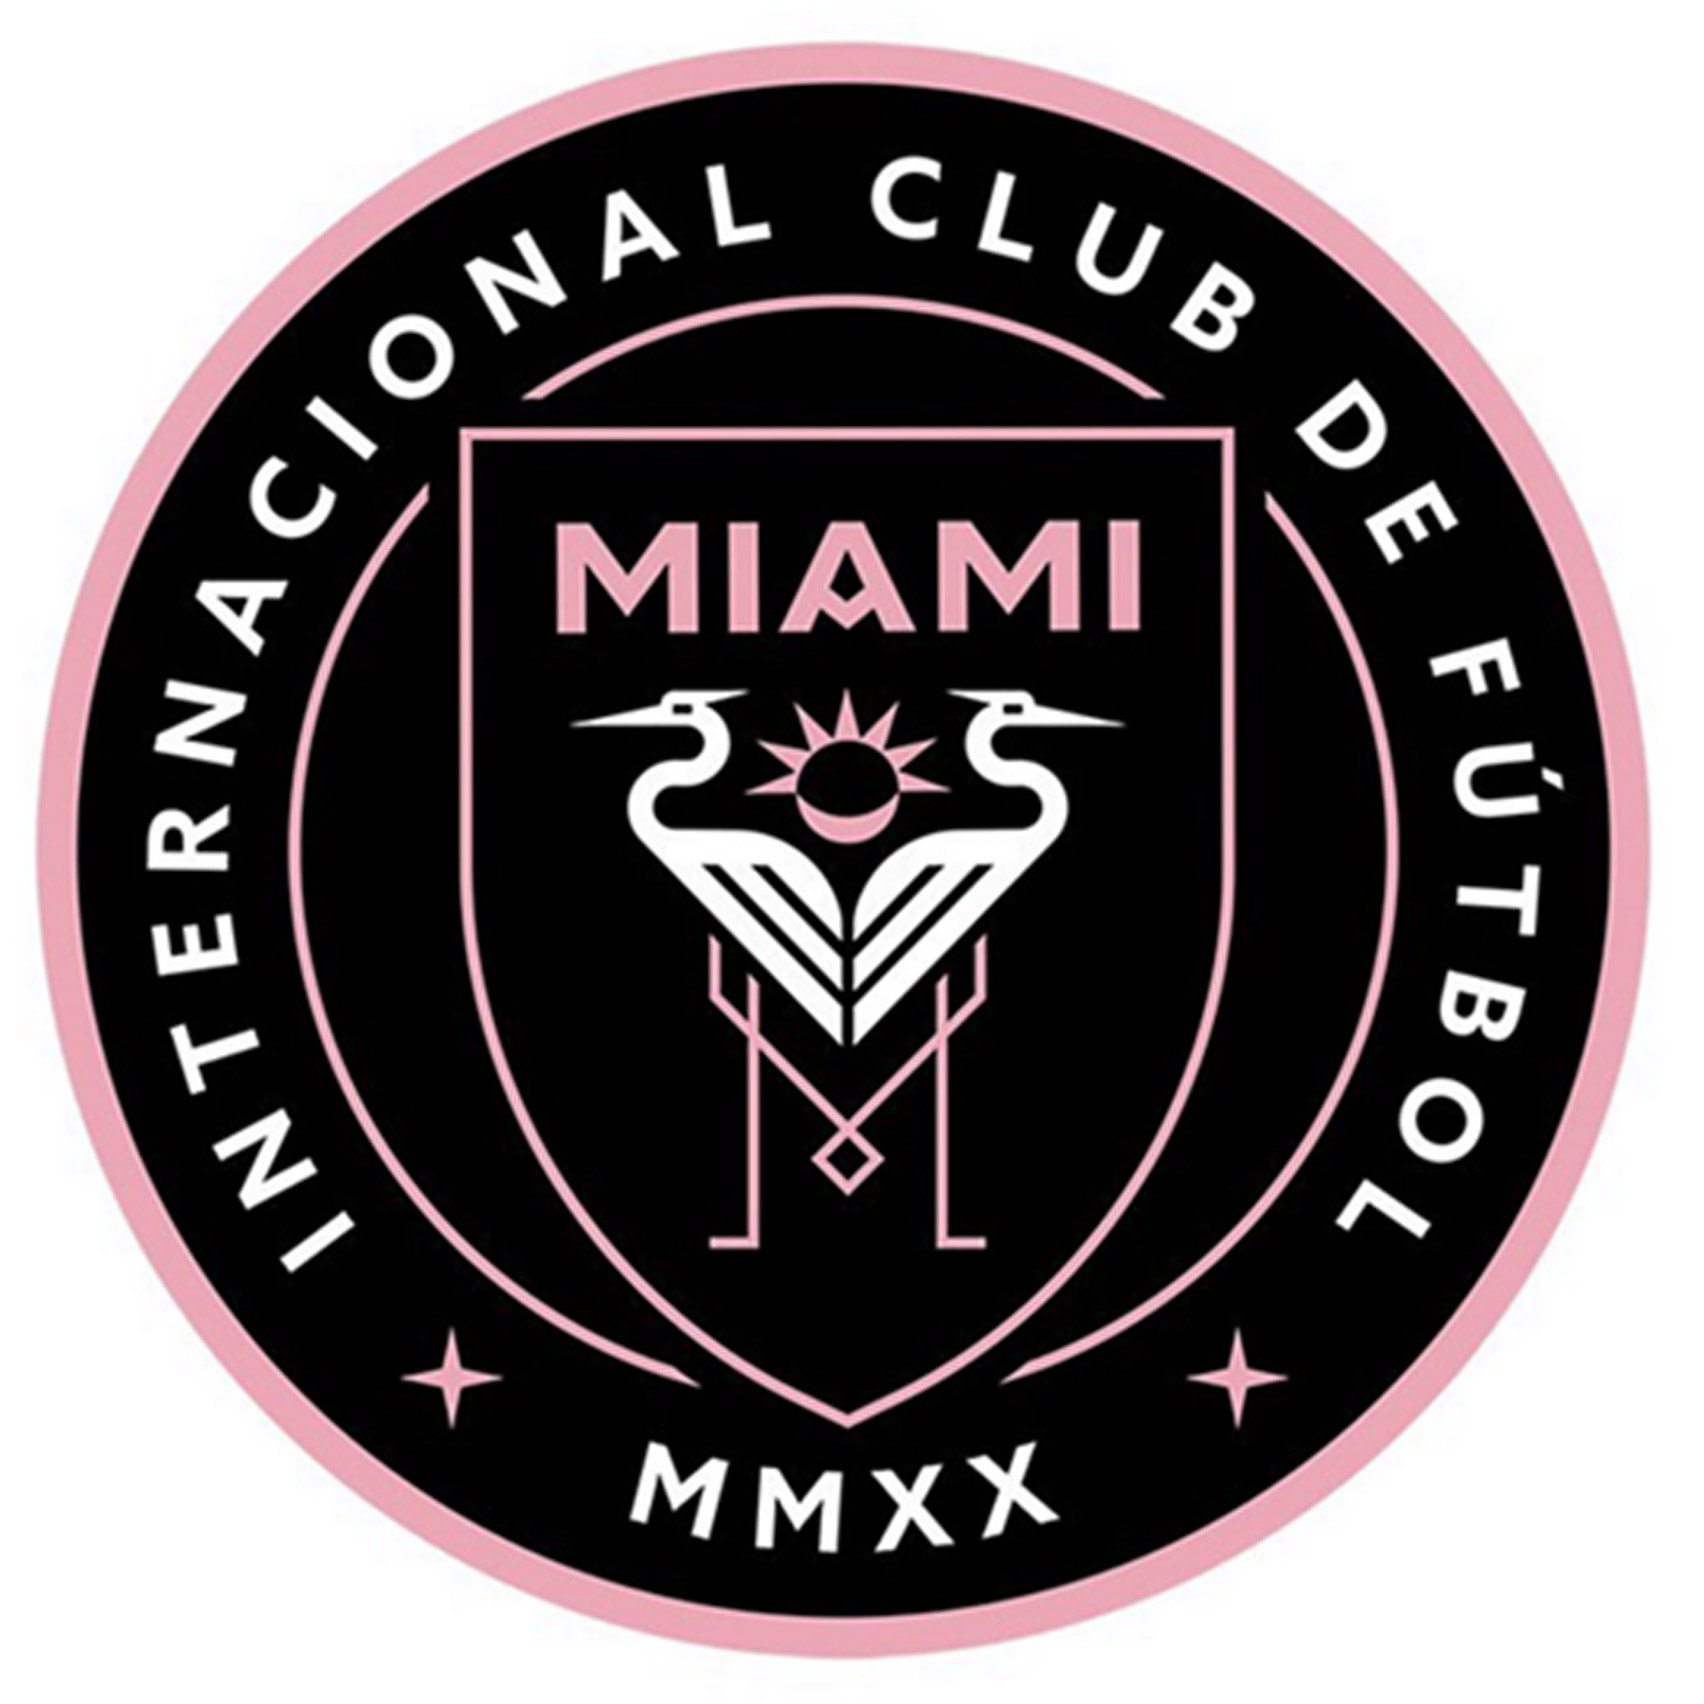 Football Crest Believed To Be For David Beckham S Miami Club